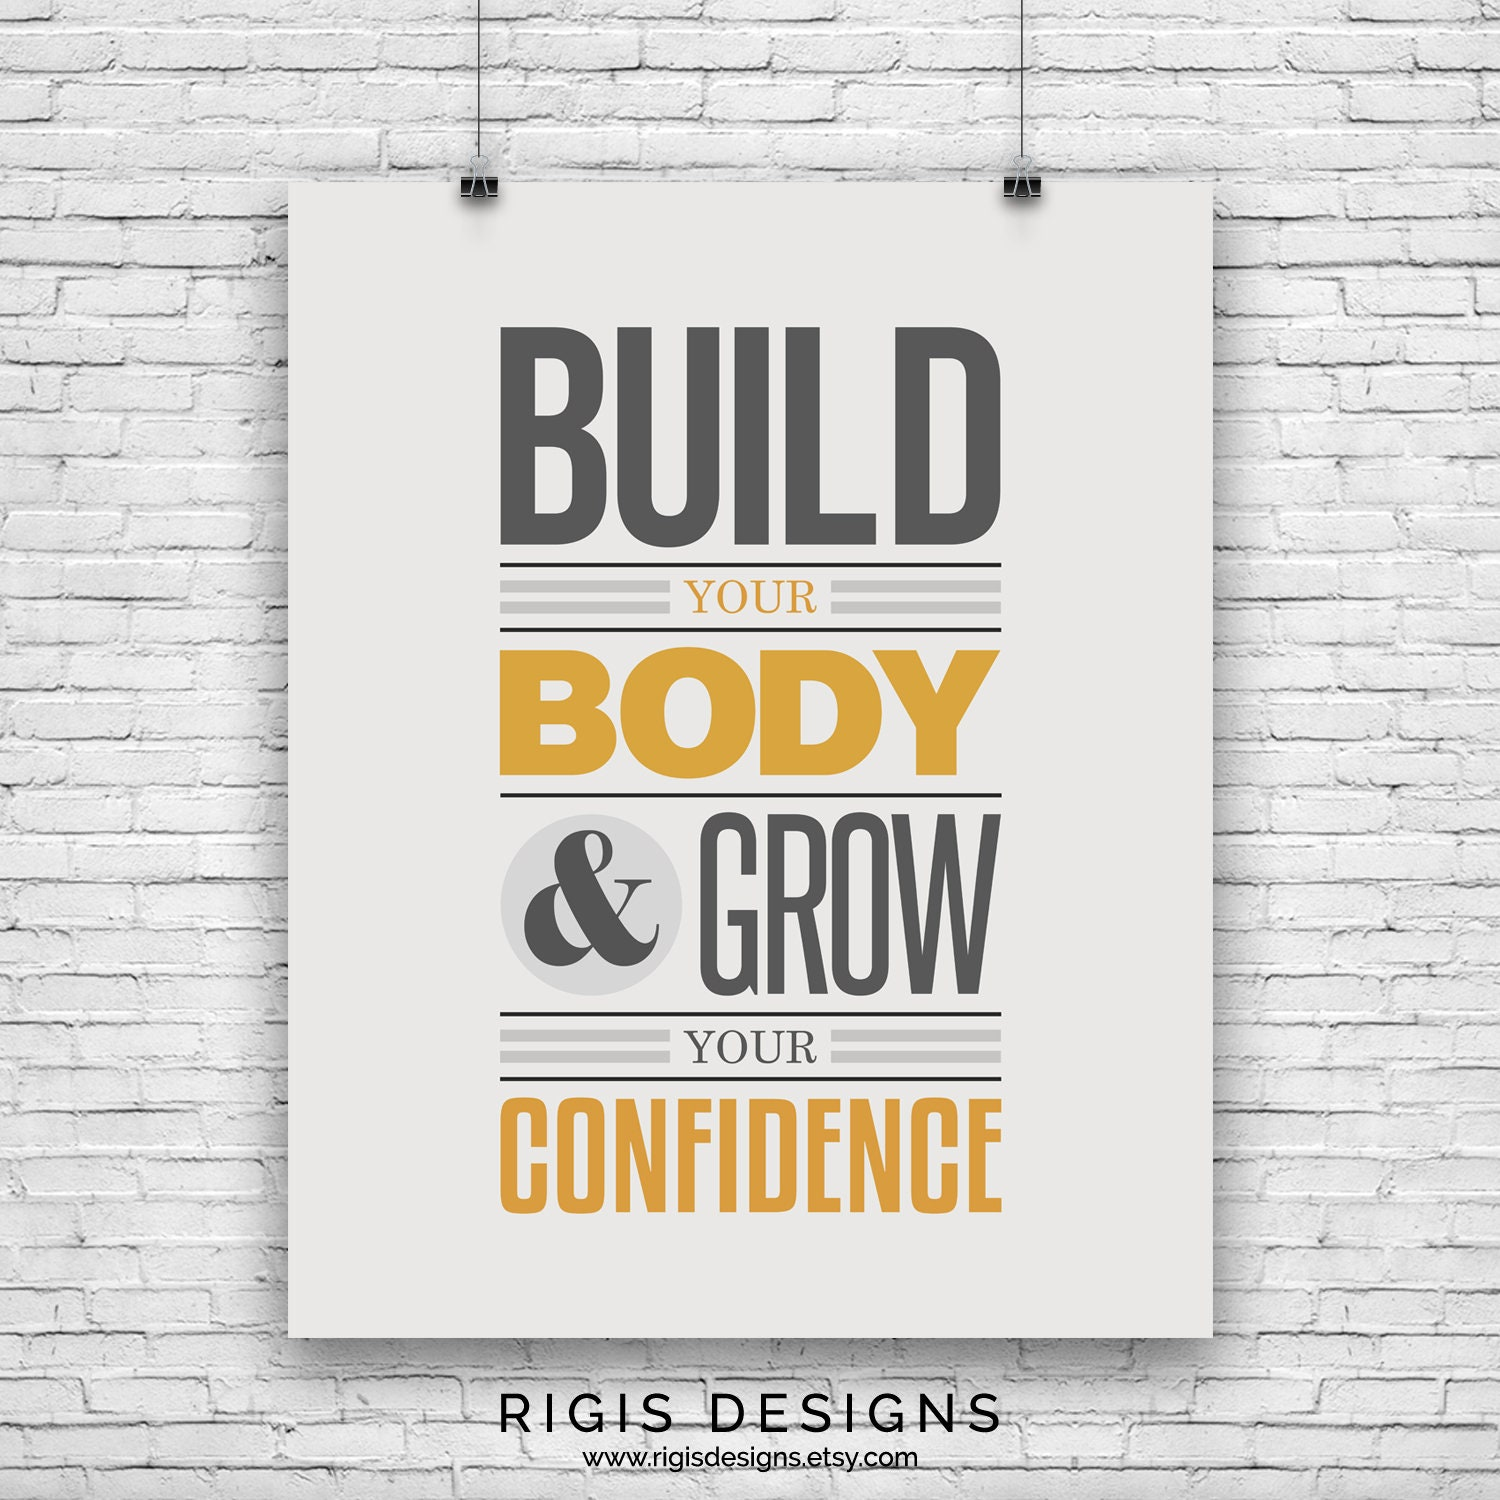 Build Your Body Grow Your Confidence, Gym Motivation Poster